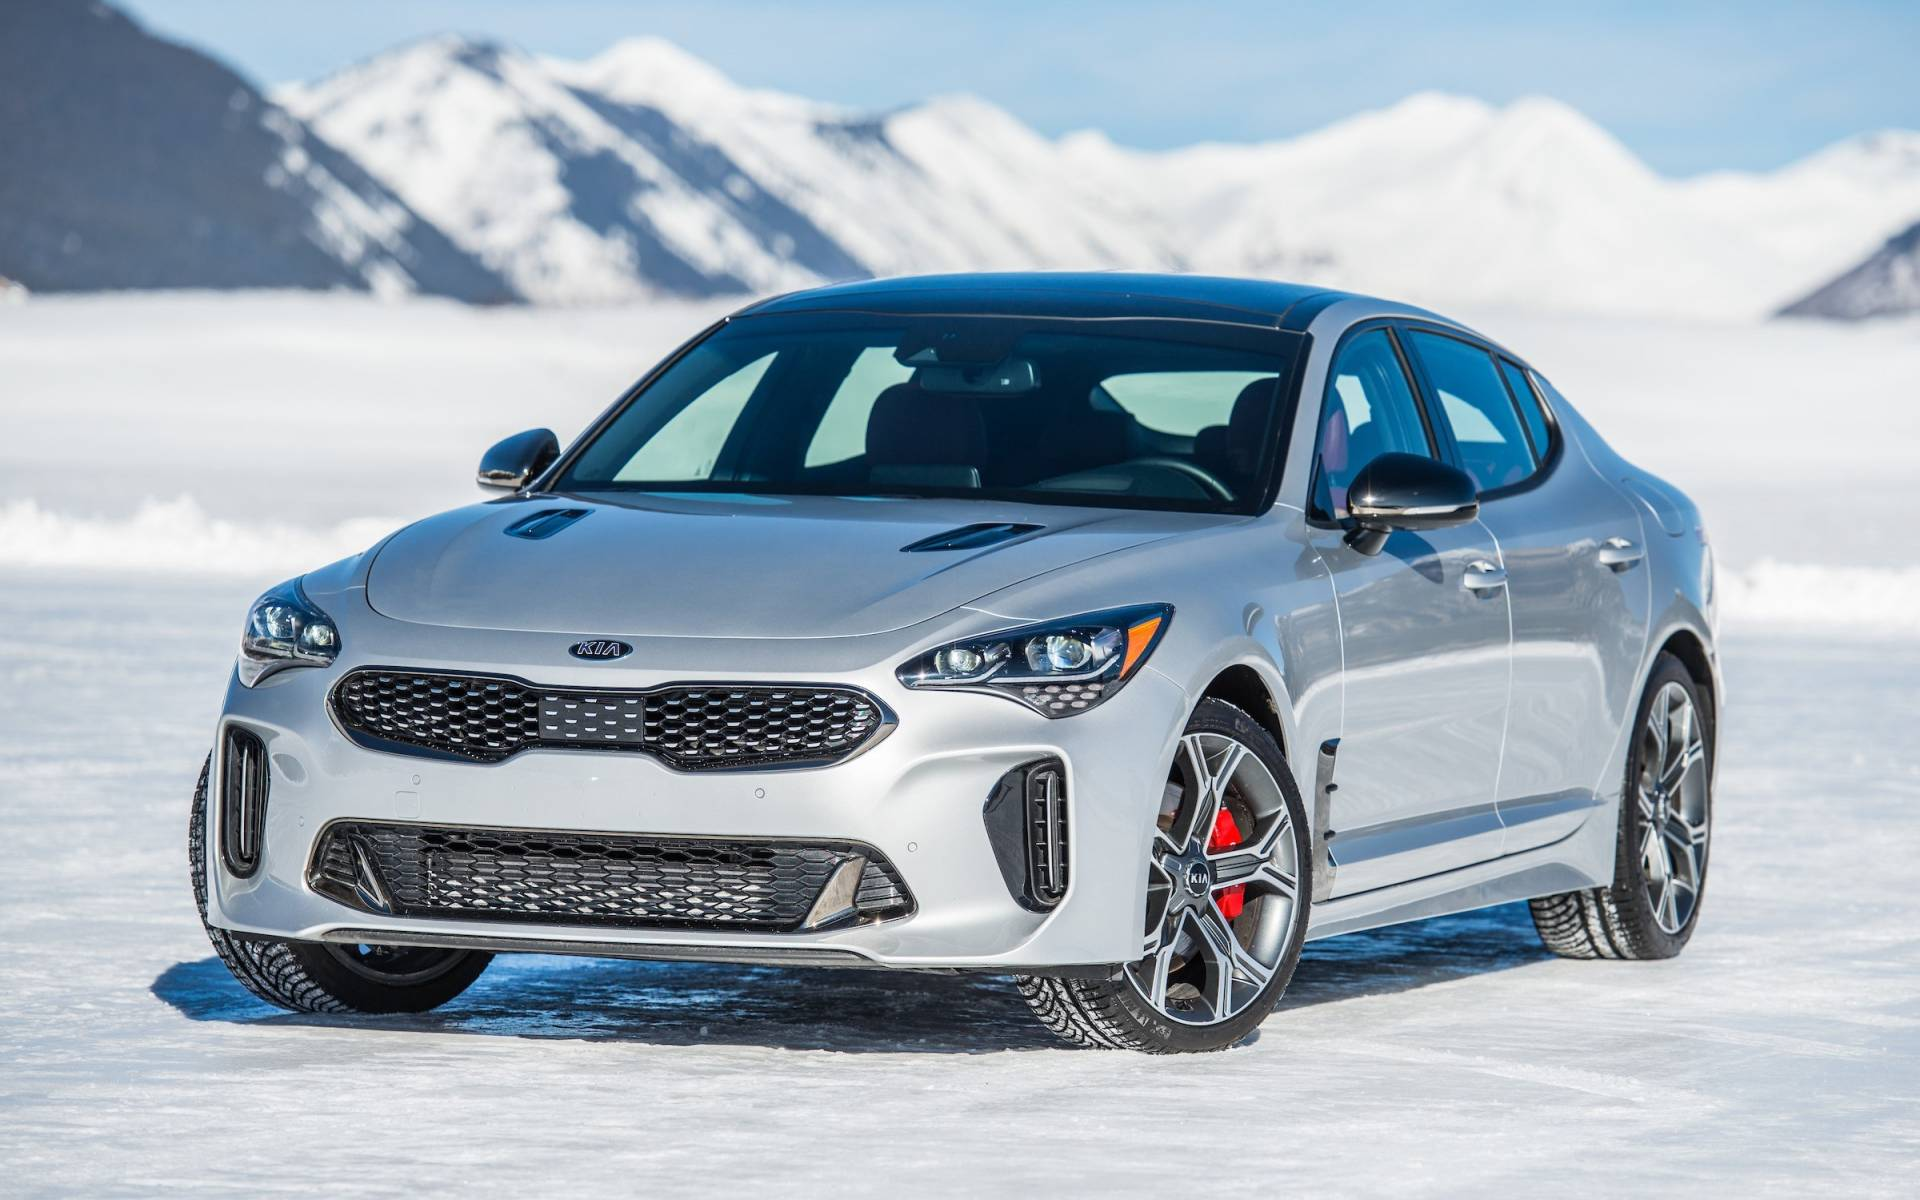 2020 Kia Stinger - News, reviews, picture galleries and videos - The Car  Guide